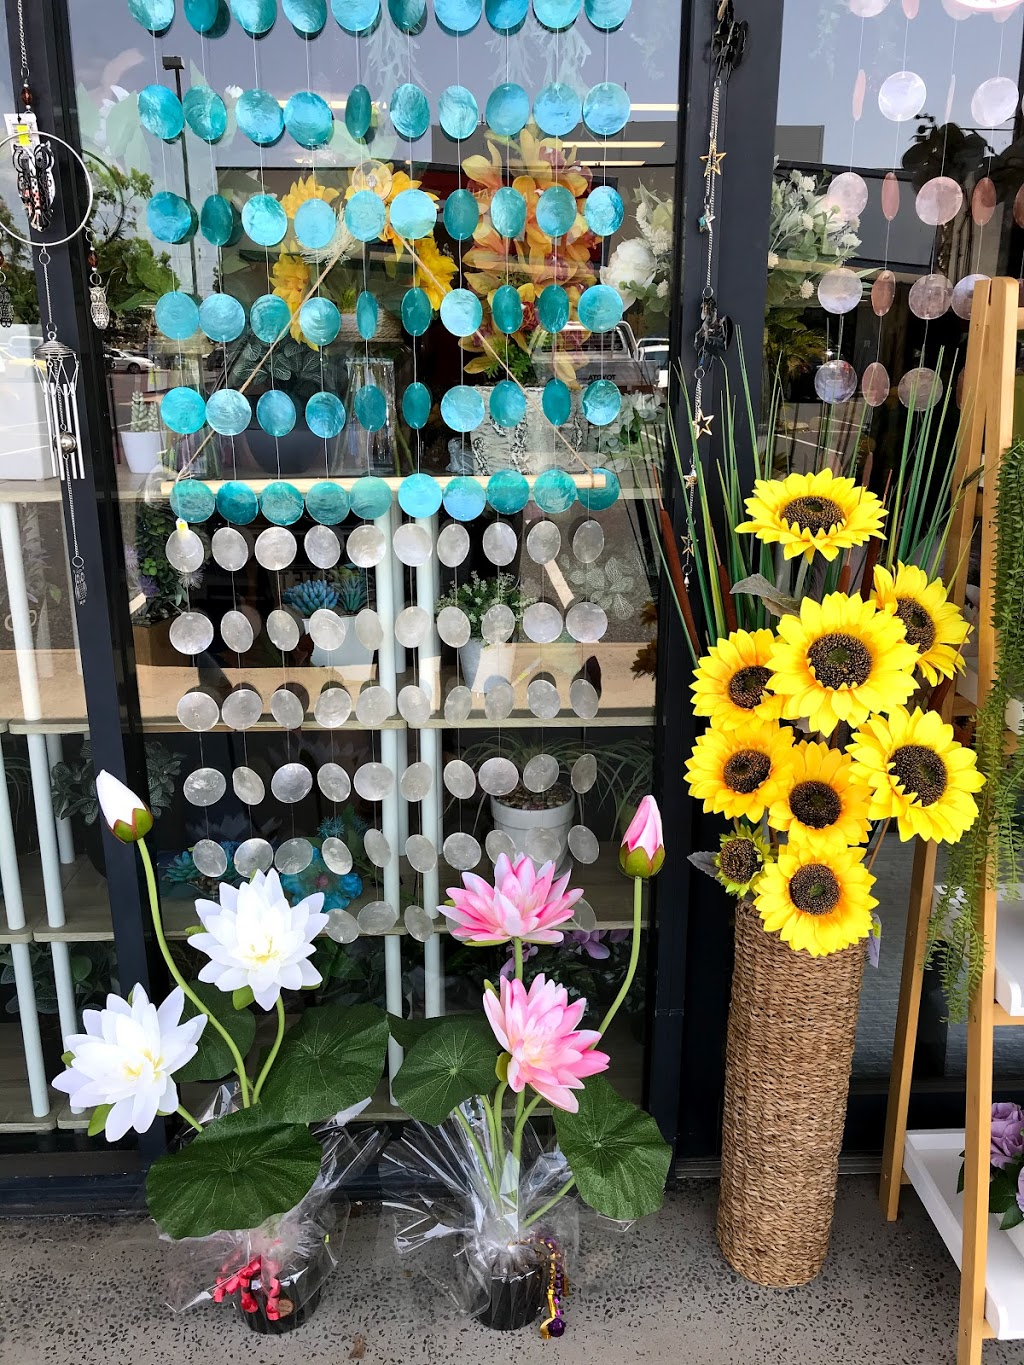 Unreal Artificial Plants | florist | Red Hill Homemakers Centre 400, 414-434 Yaamba Rd, Norman Gardens QLD 4701, Australia | 0417712827 OR +61 417 712 827